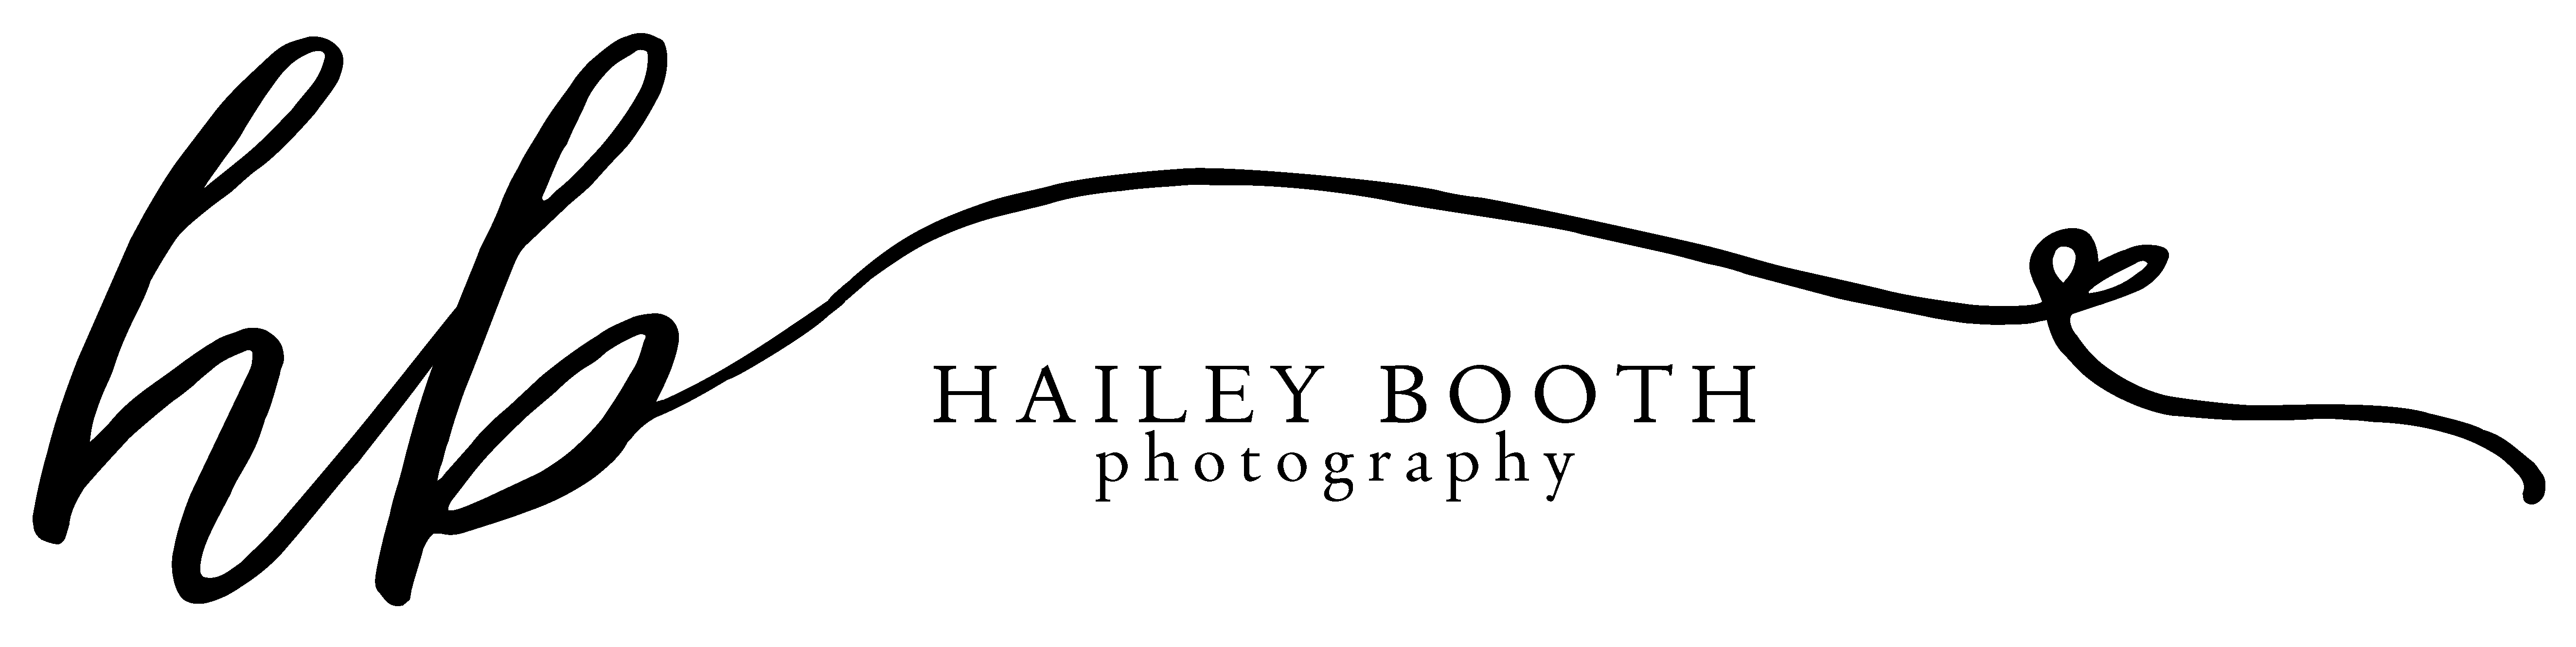 Hailey Booth Photography